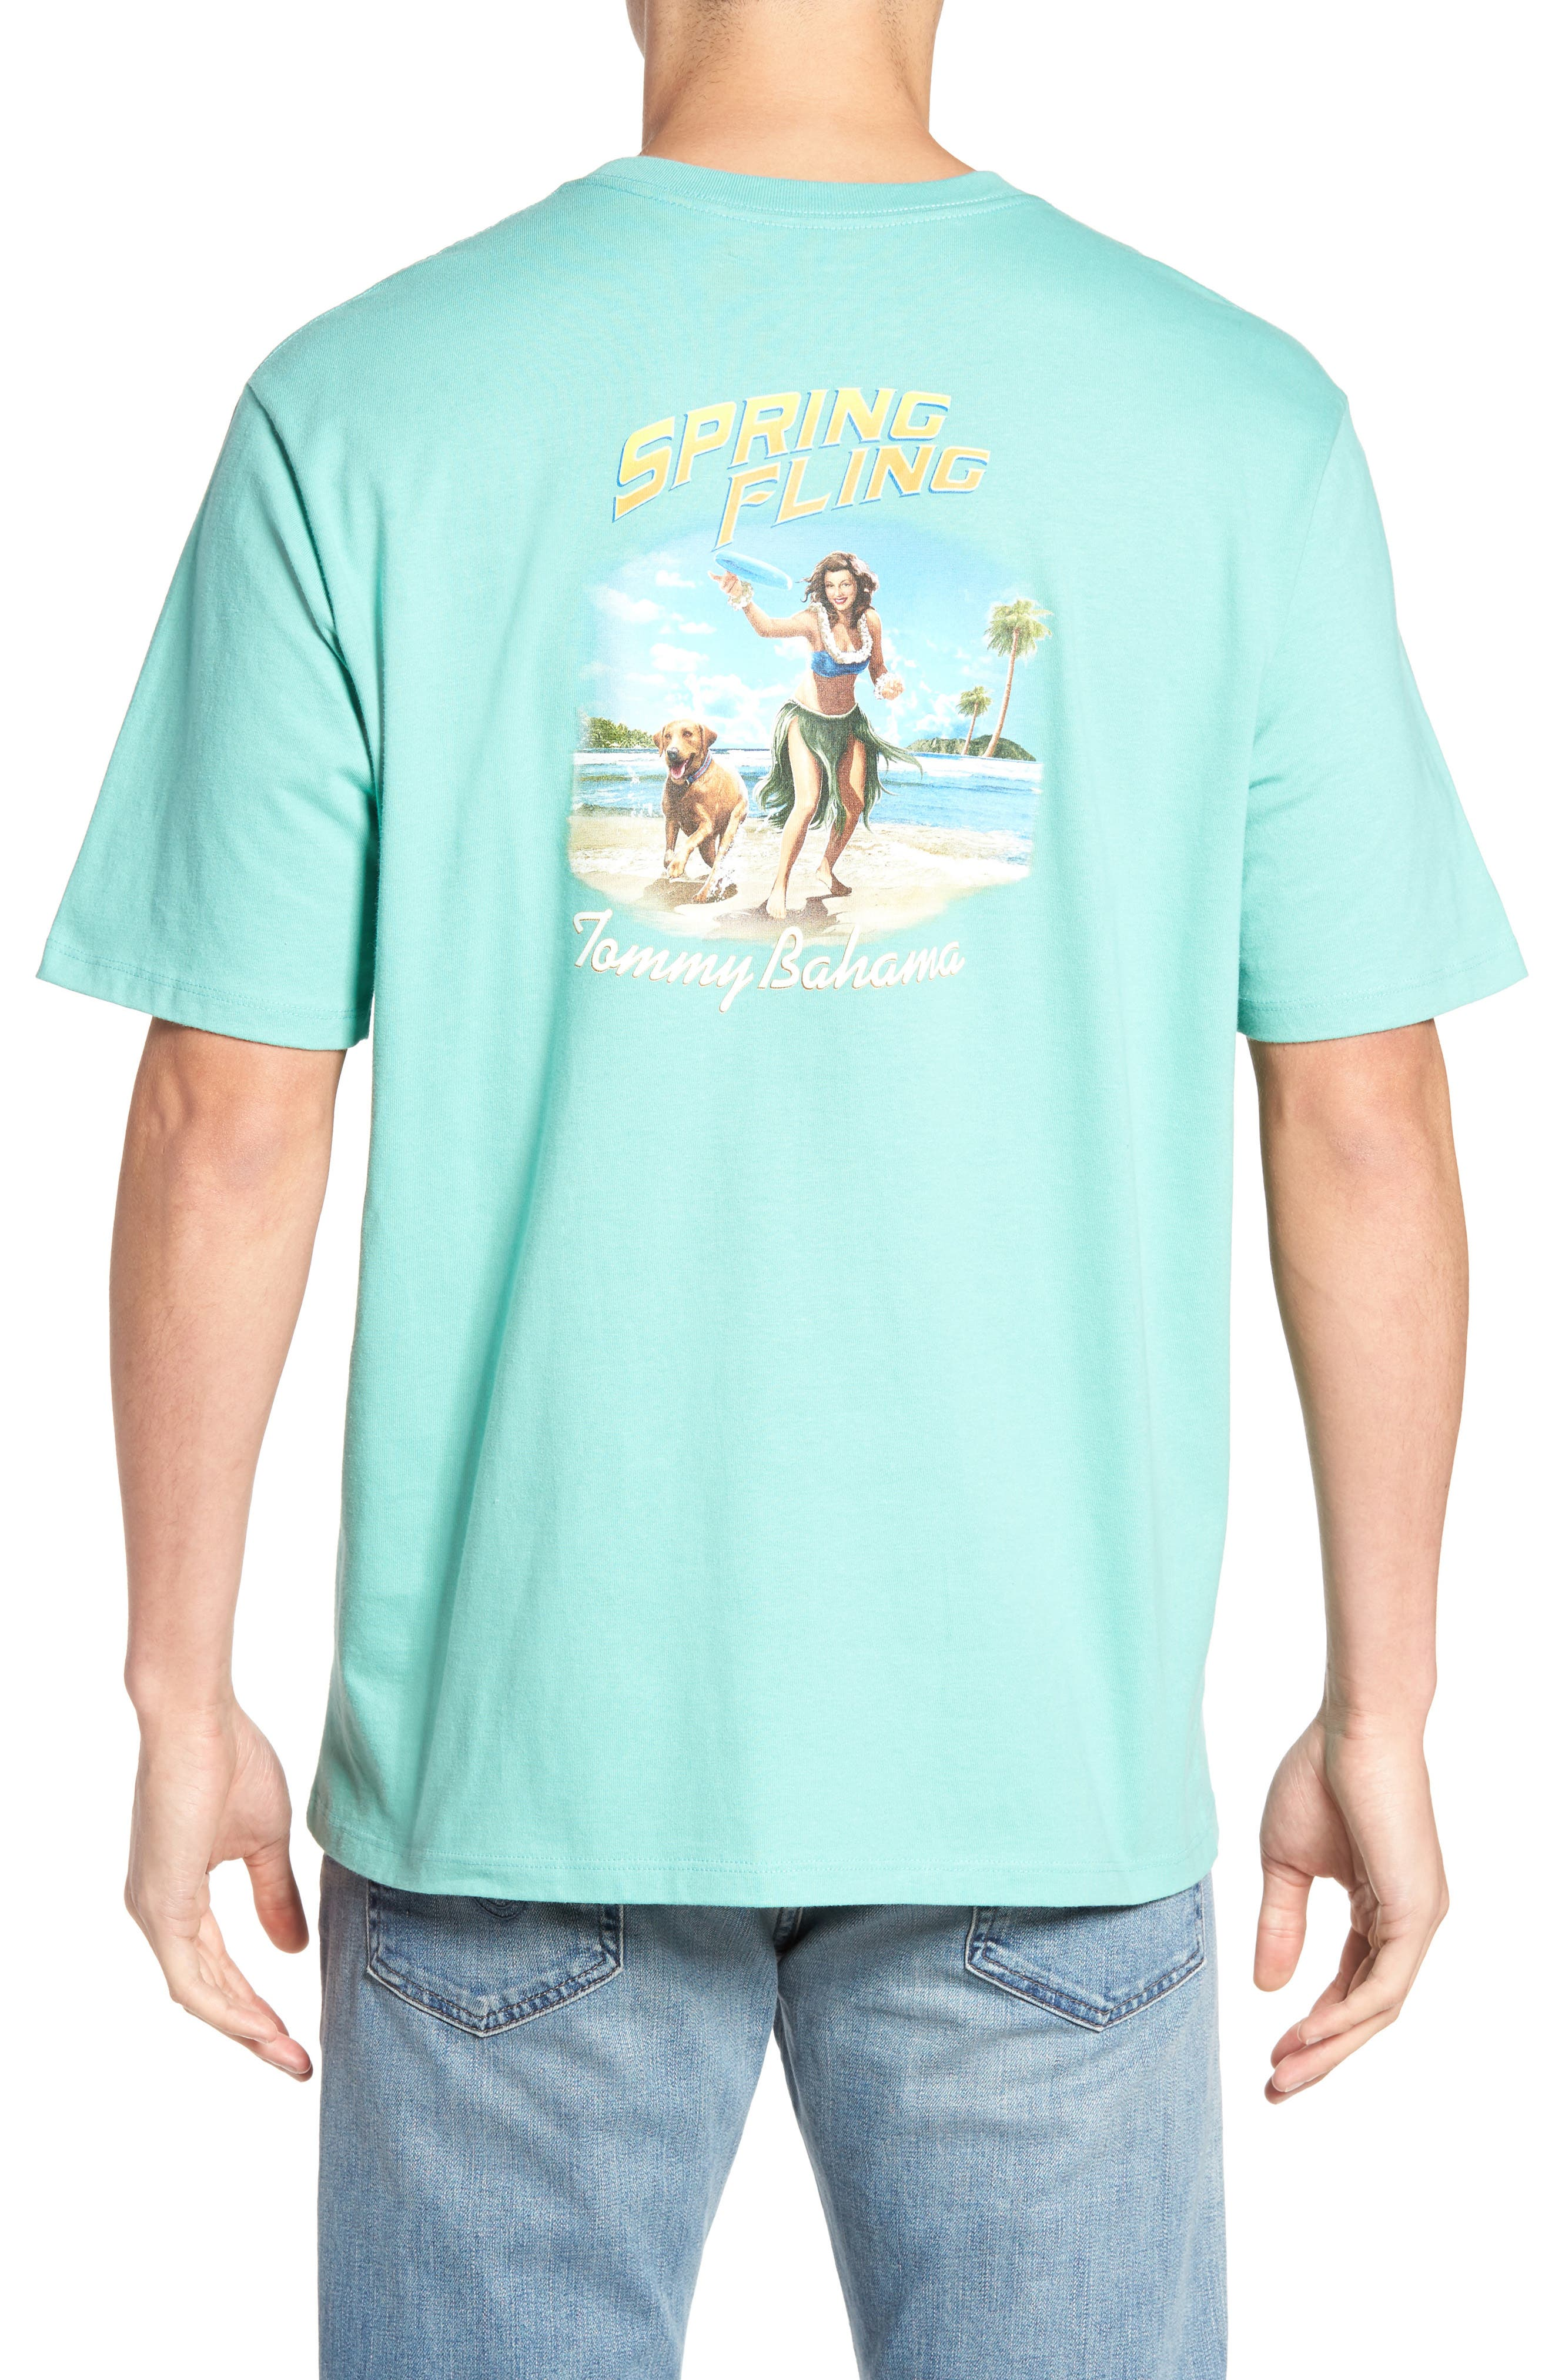 Tommy Bahama Spring Fling T-Shirt